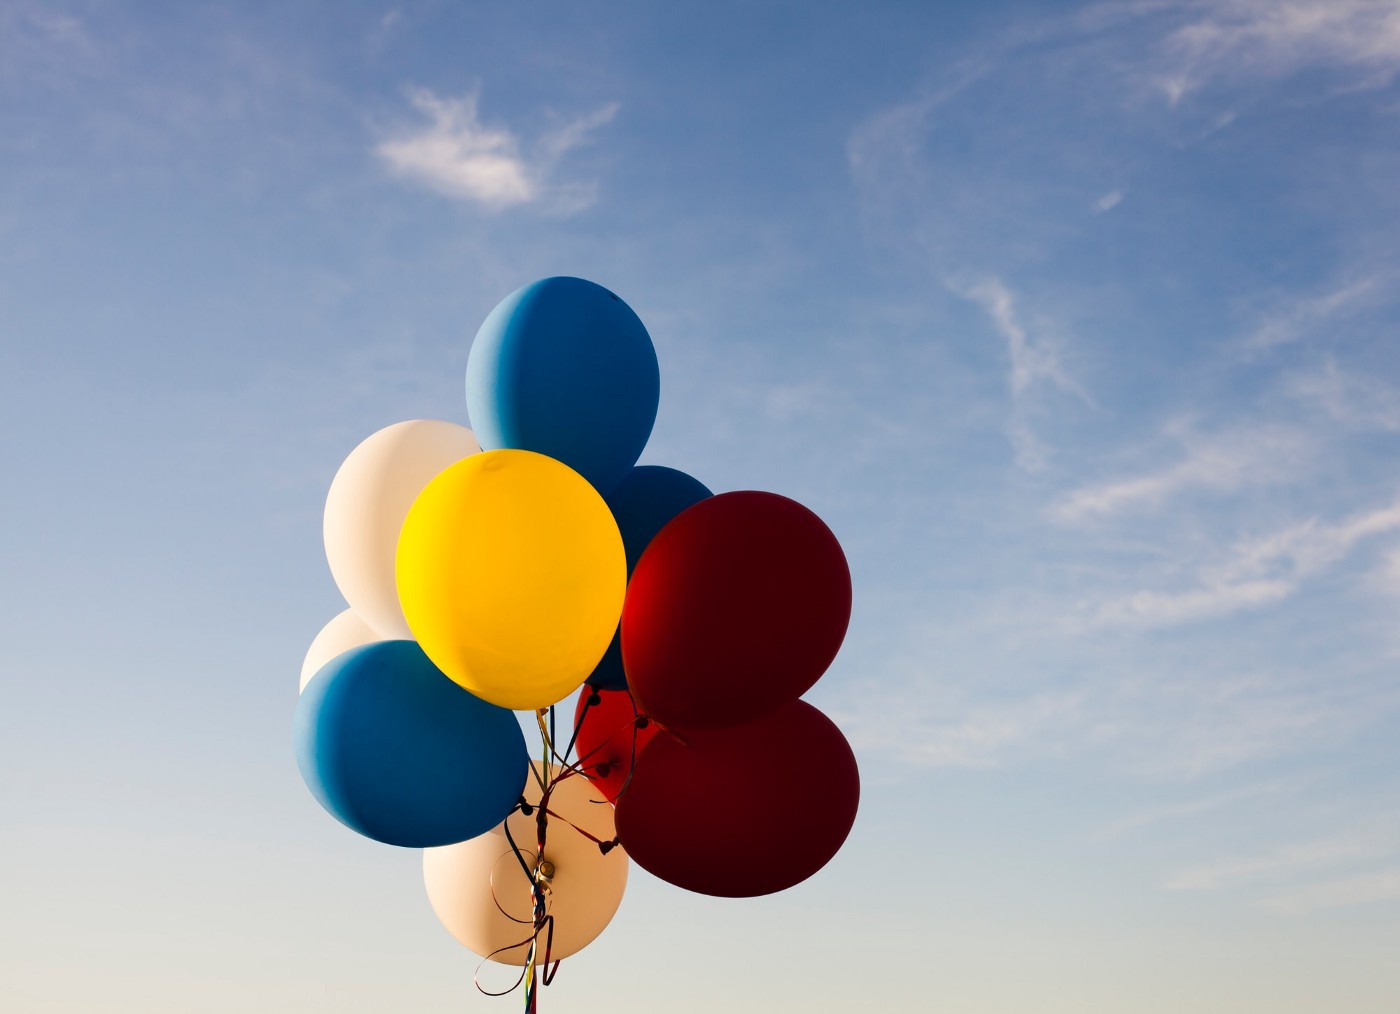 Balloons on a string